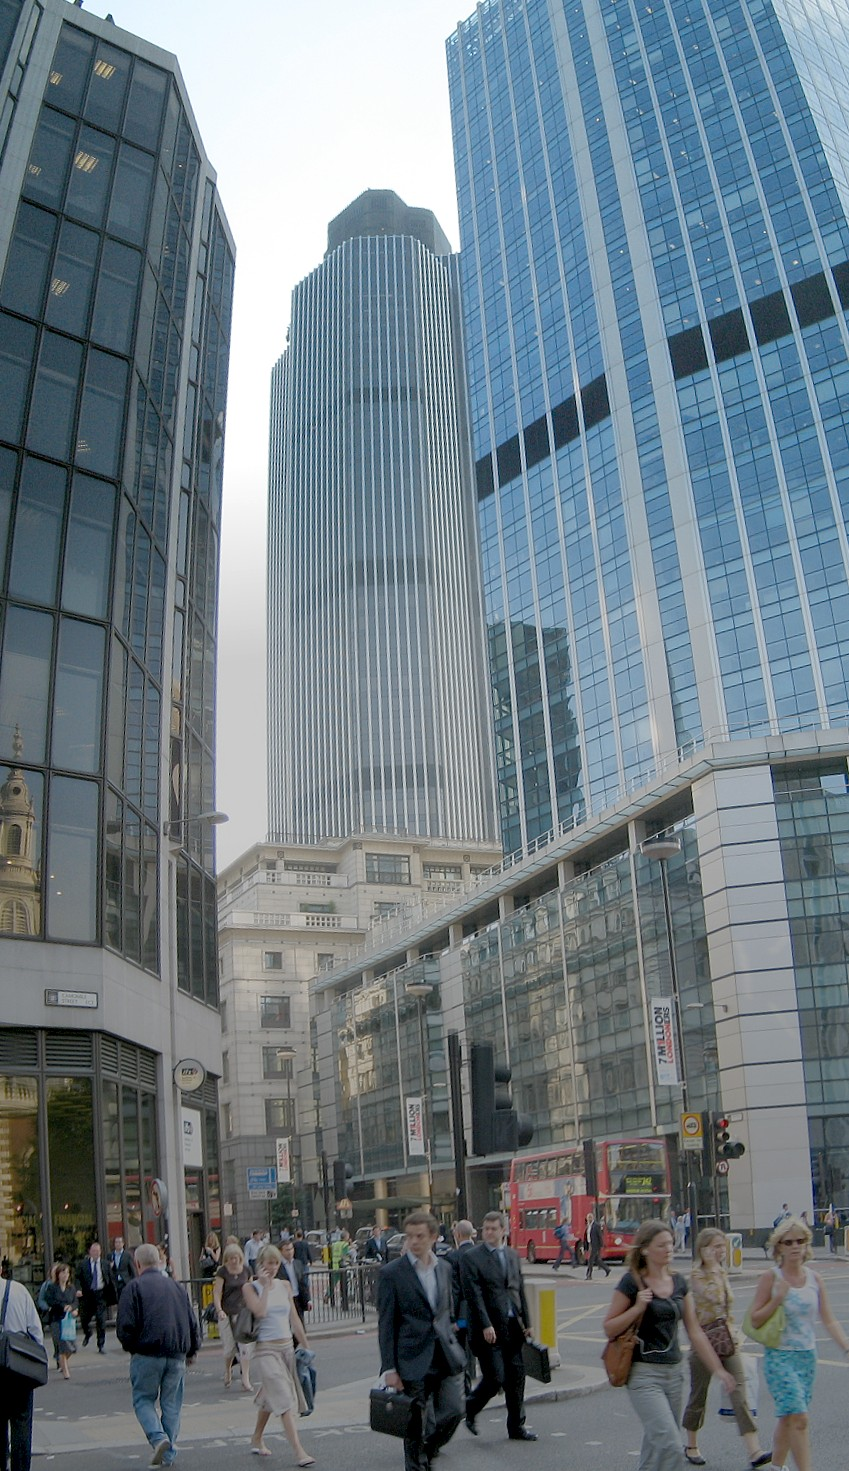 City of London - Bishopsgate